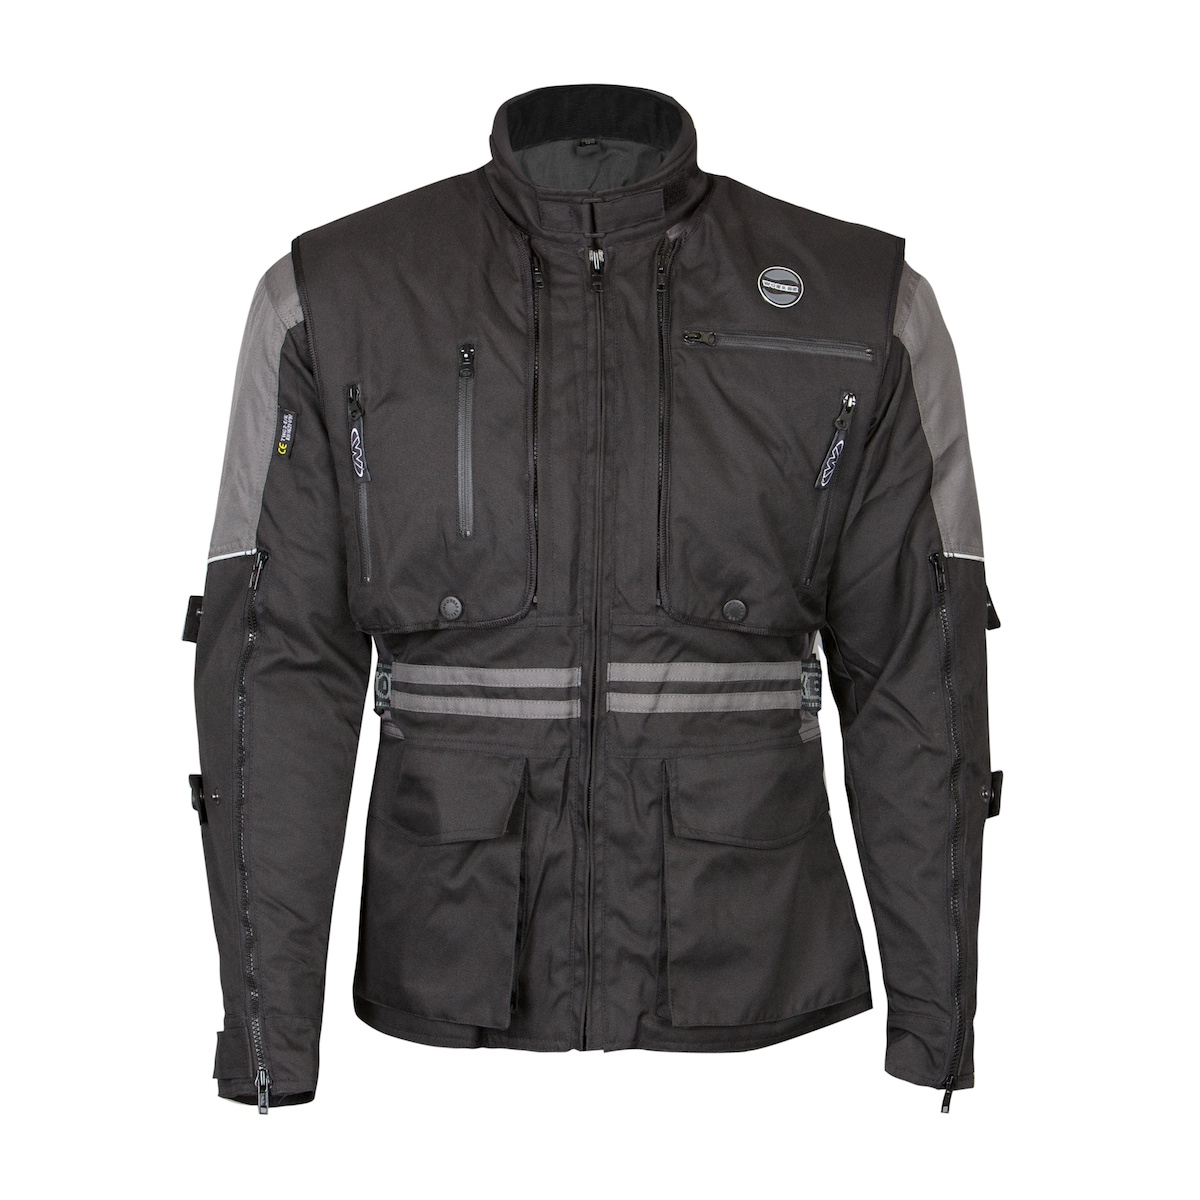 Moto bunda WORKER Roadstar 4XL